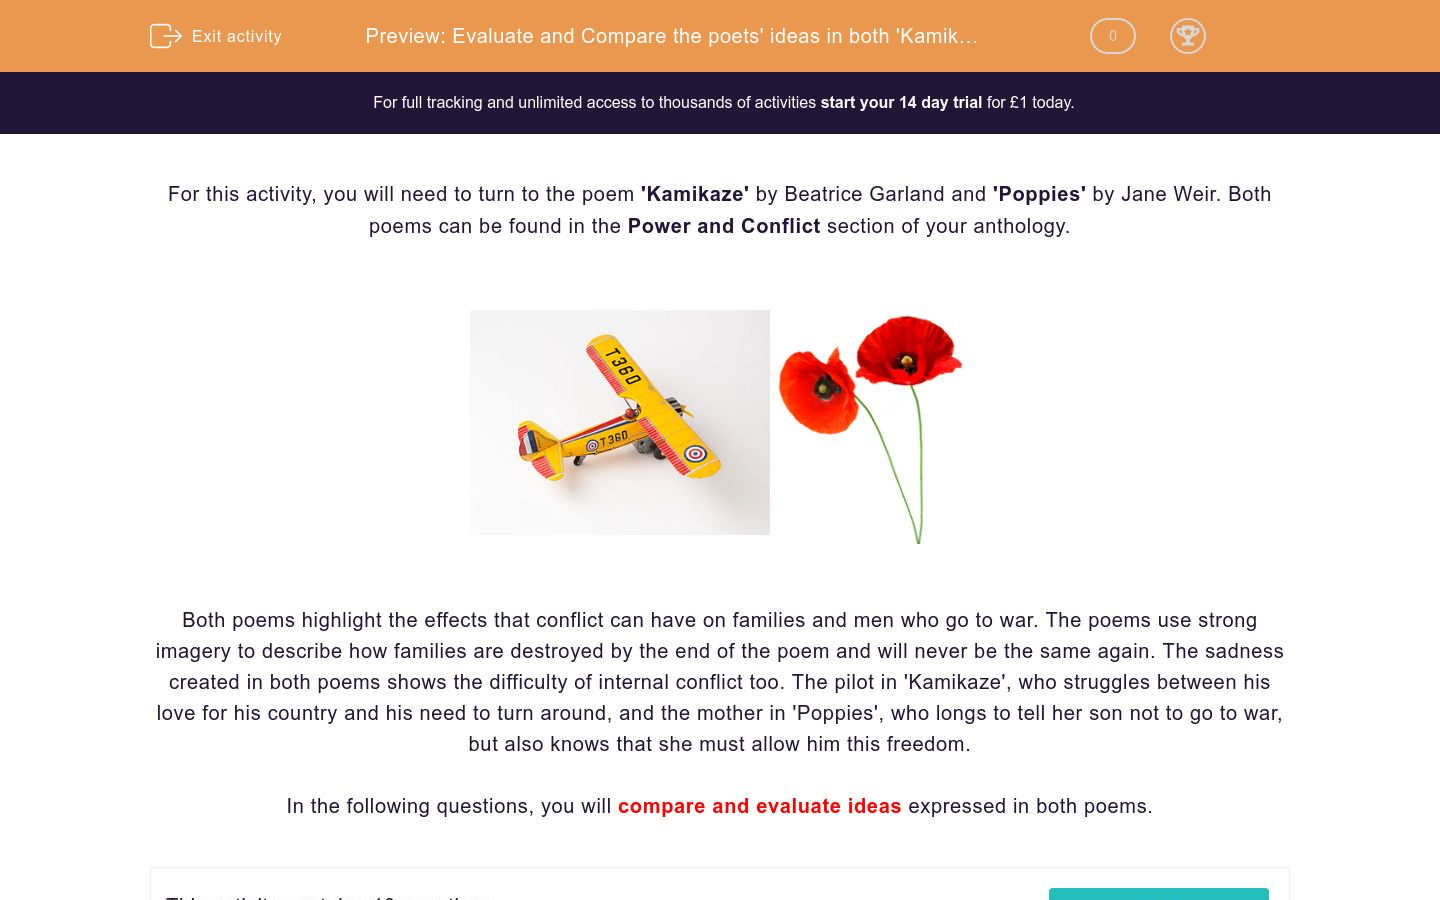 'Evaluate and Compare the poets' ideas in both 'Kamikaze' by Beatrice Garland and 'Poppies' by Jane Weir' worksheet